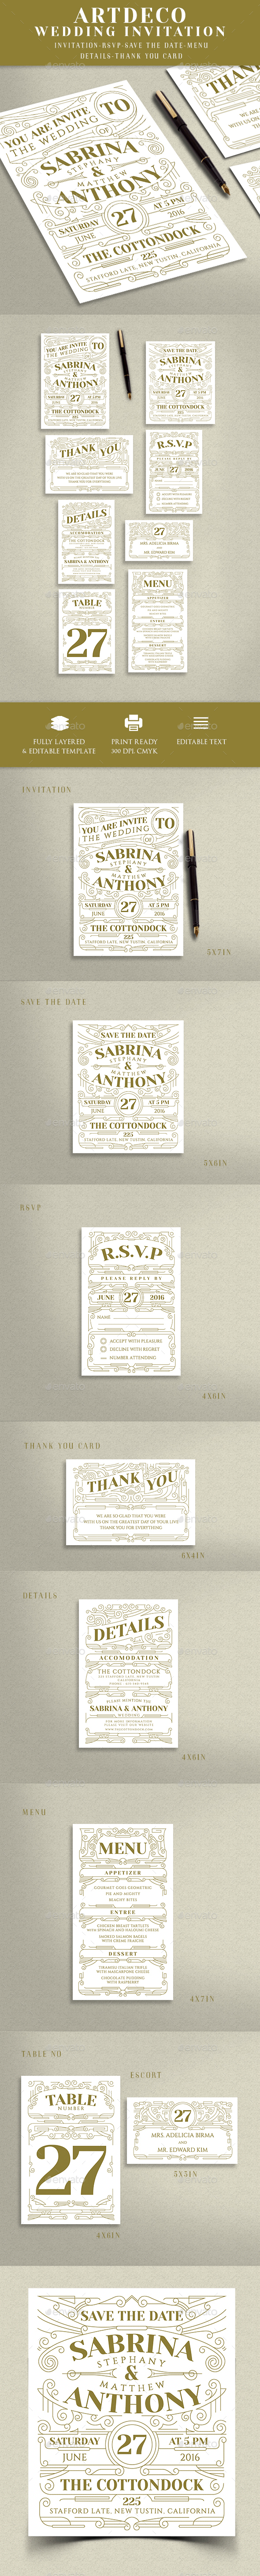 Artdeco Wedding Invitation - Weddings Cards & Invites